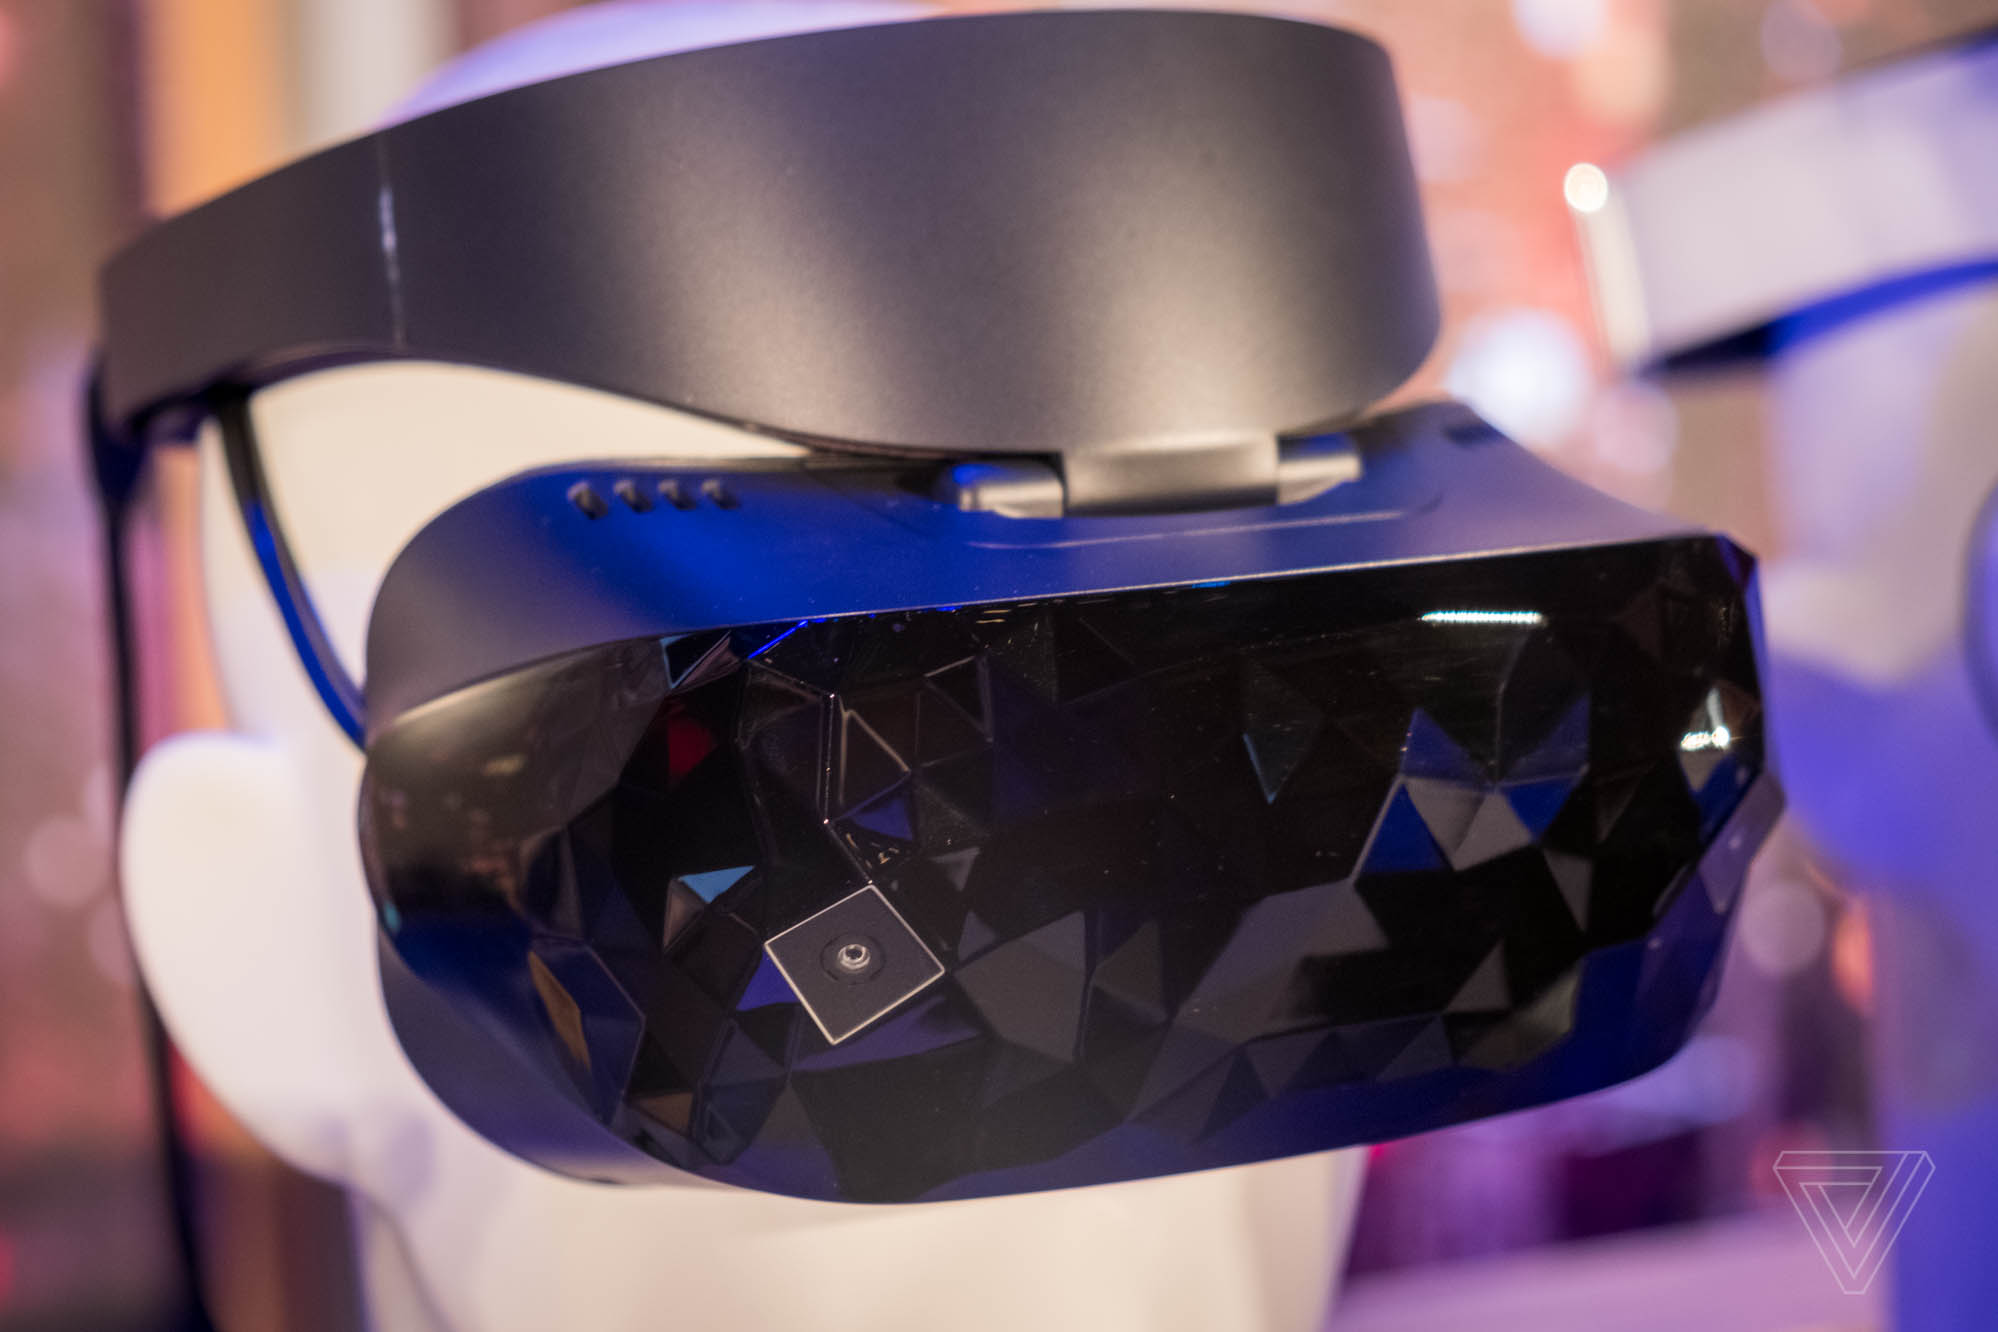 Microsoft Reveals Dell and Asus VR Headset Designs